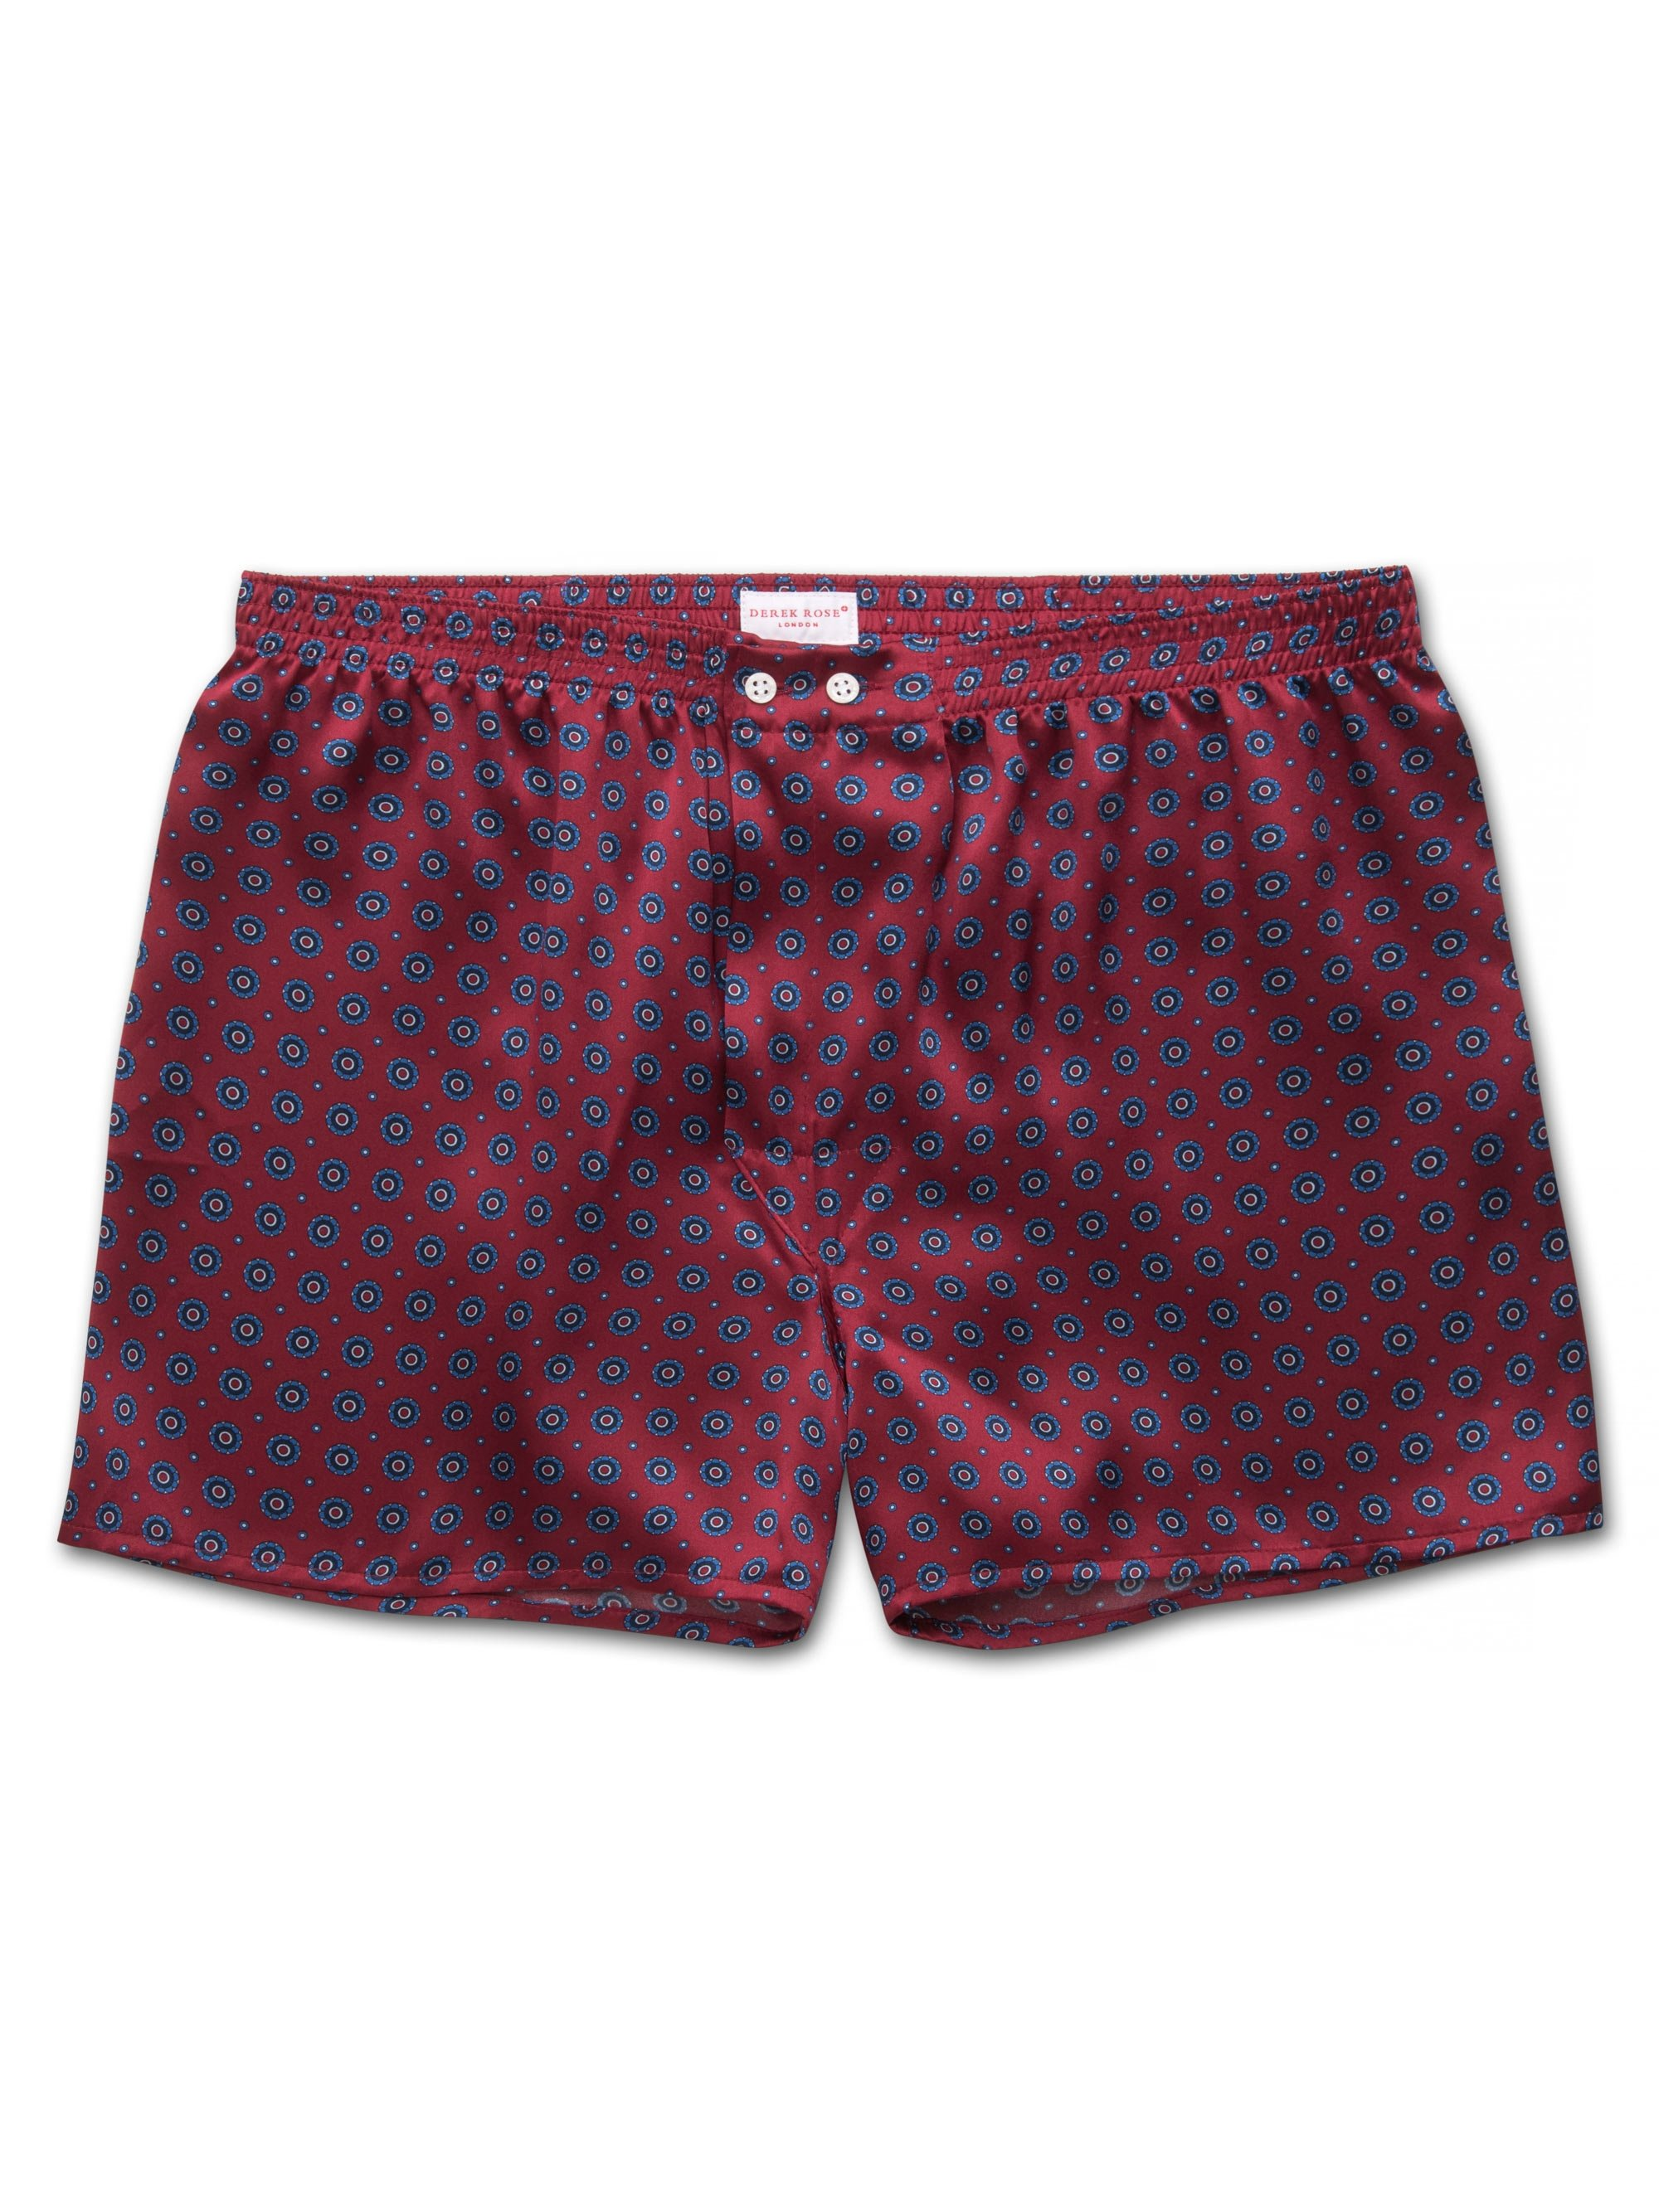 Men's Classic Fit Boxer Shorts Brindisi 52 Pure Silk Satin Red